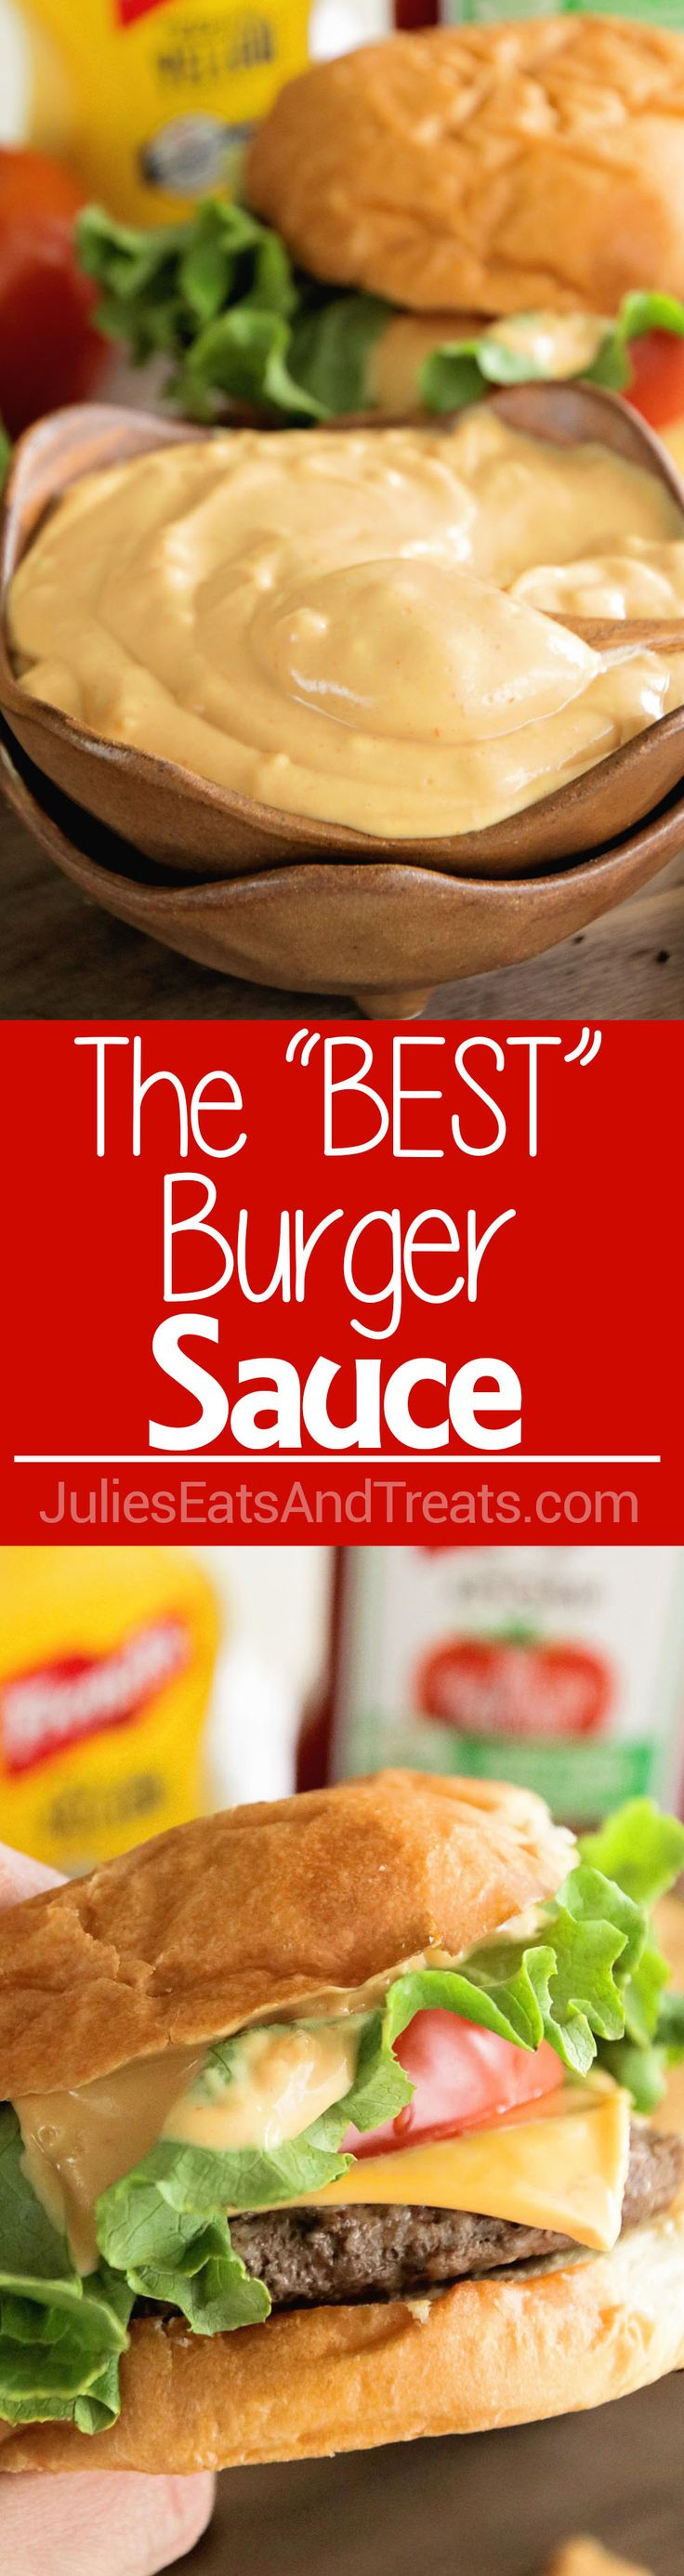 The Best Burger Sauce EVER! This is the Ultimate Sauce to top your Hamburgers with! Super Simple & Delicious!